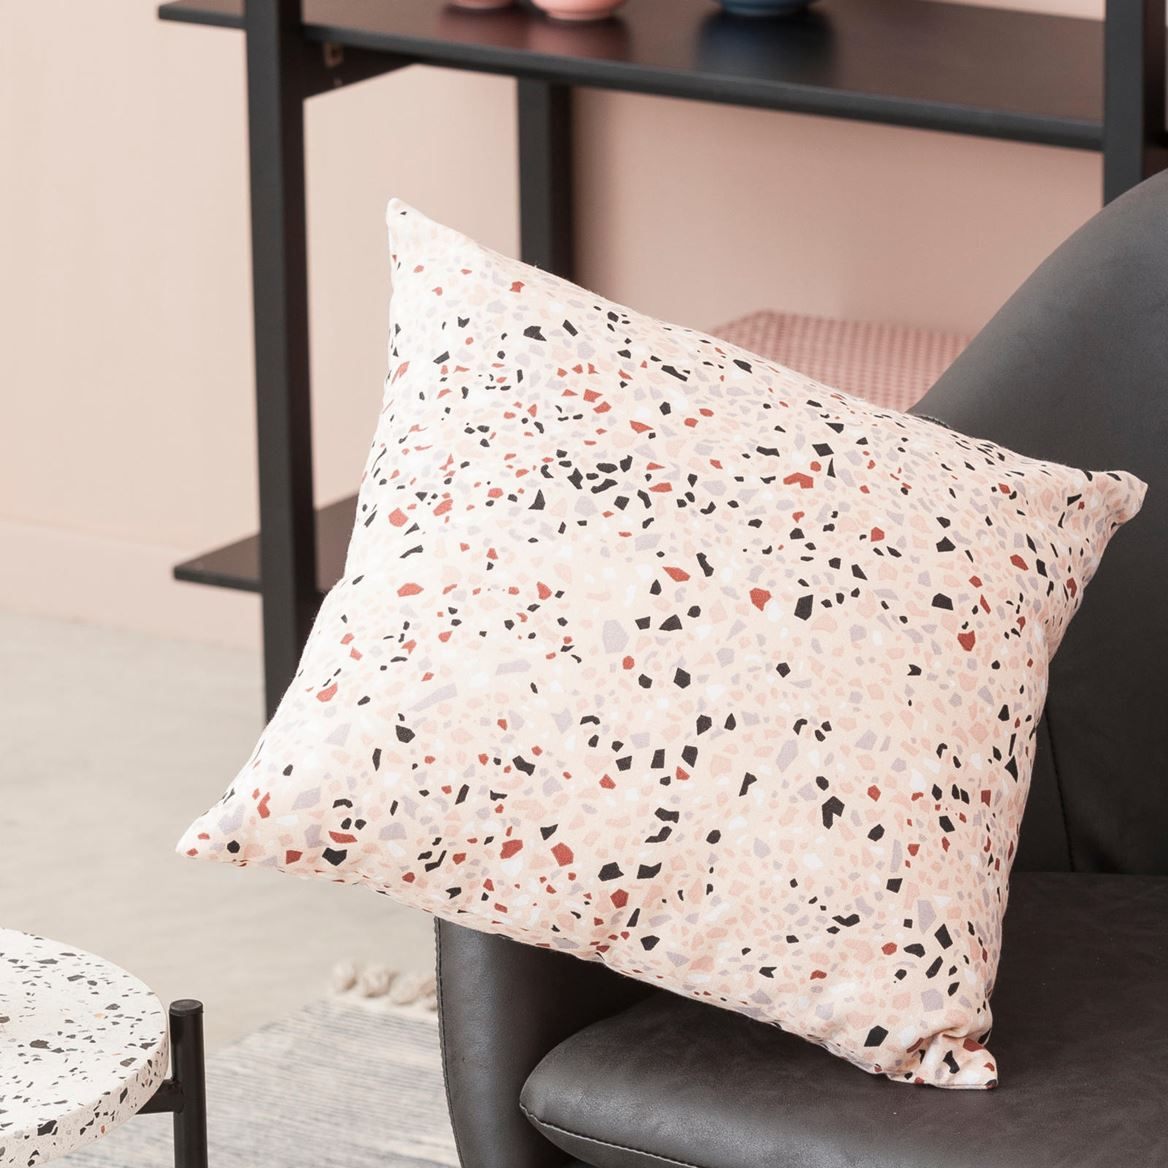 GRANITO Coussin diverses couleurs Larg. 40 x Long. 40 cm_granito-coussin-diverses-couleurs-larg--40-x-long--40-cm